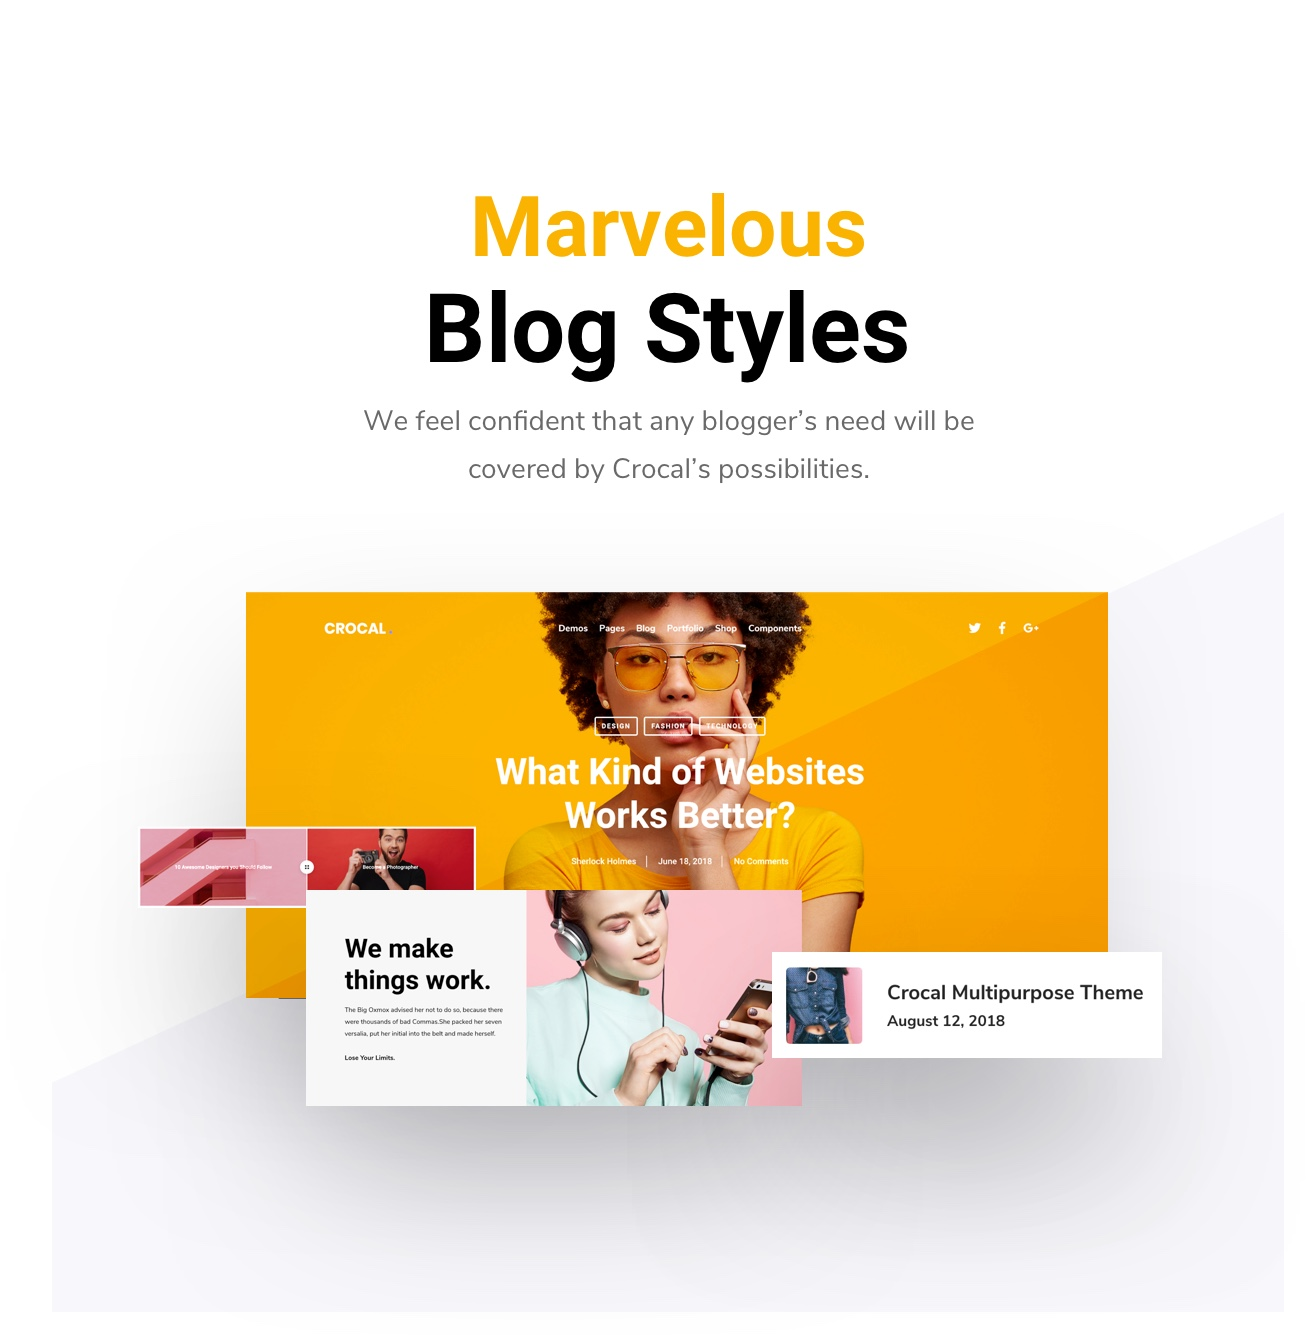 Crocal Blog styles